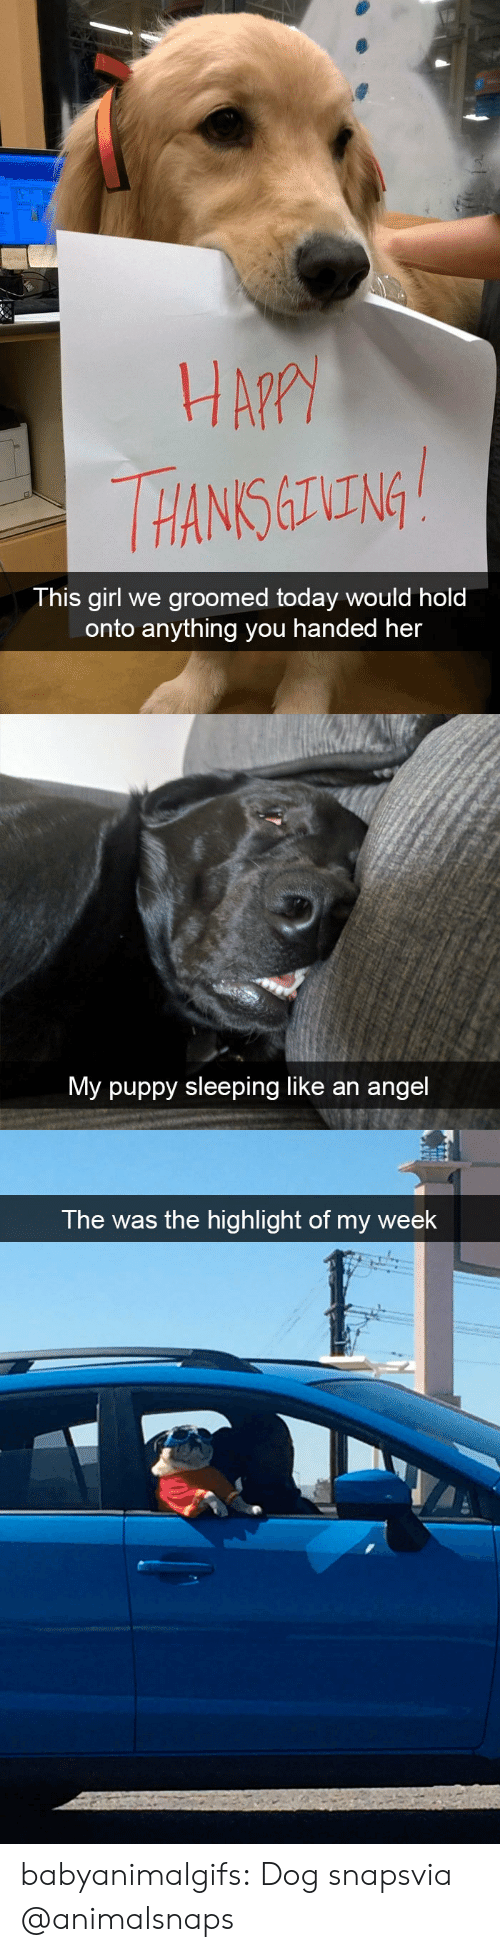 Tumblr, Angel, and Blog: HA?  HANS ING  This girl we groomed today would hold  onto anything you handed her   My puppy sleeping like an angel   The was the highlight of my week babyanimalgifs:  Dog snapsvia @animalsnaps